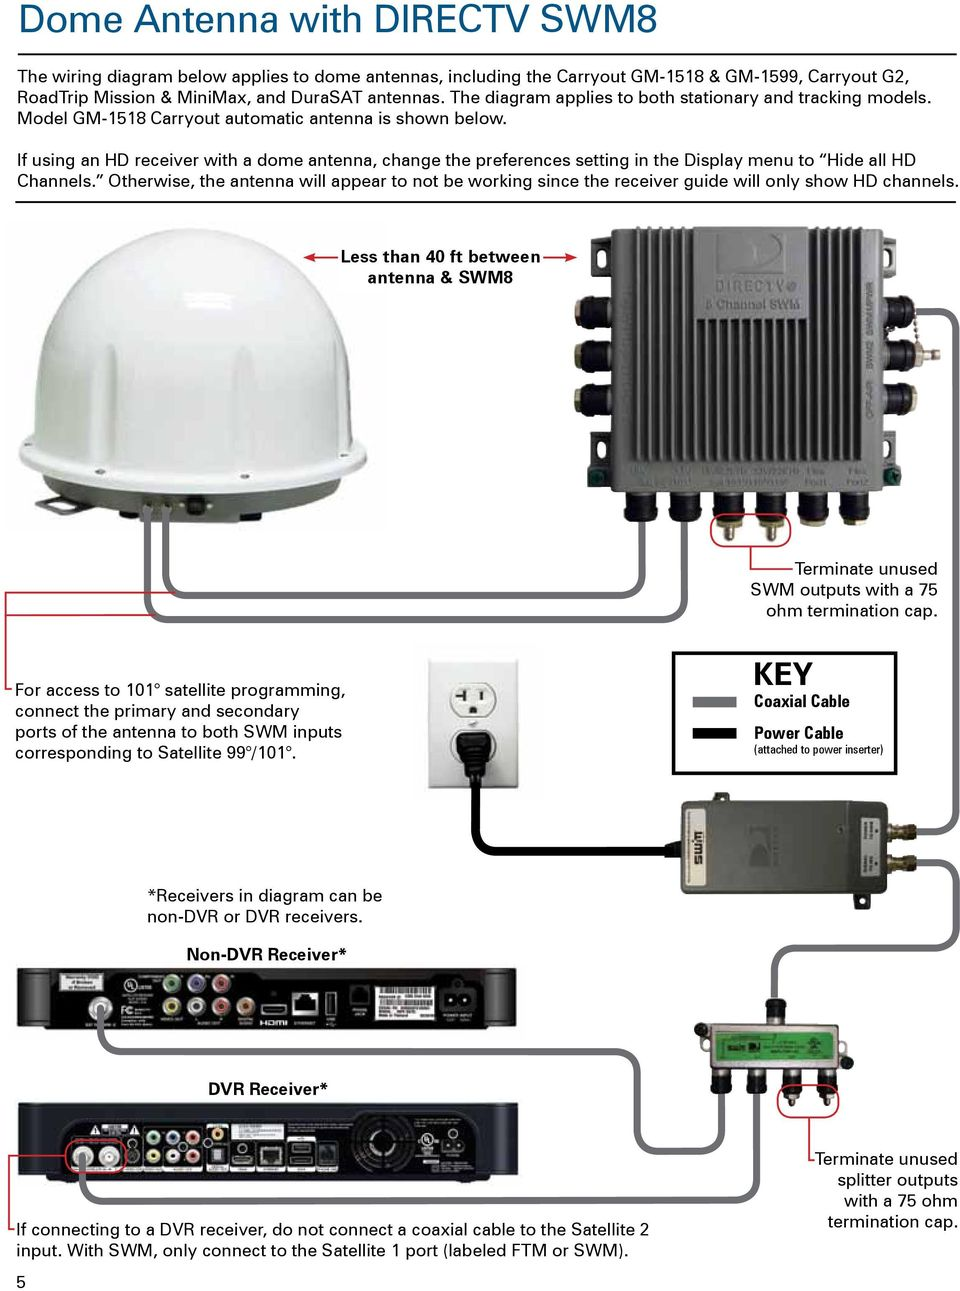 directv dvr wiring diagram dometic rv refrigerator direct tv hd antenna discover live and shows medium resolution of source genie install